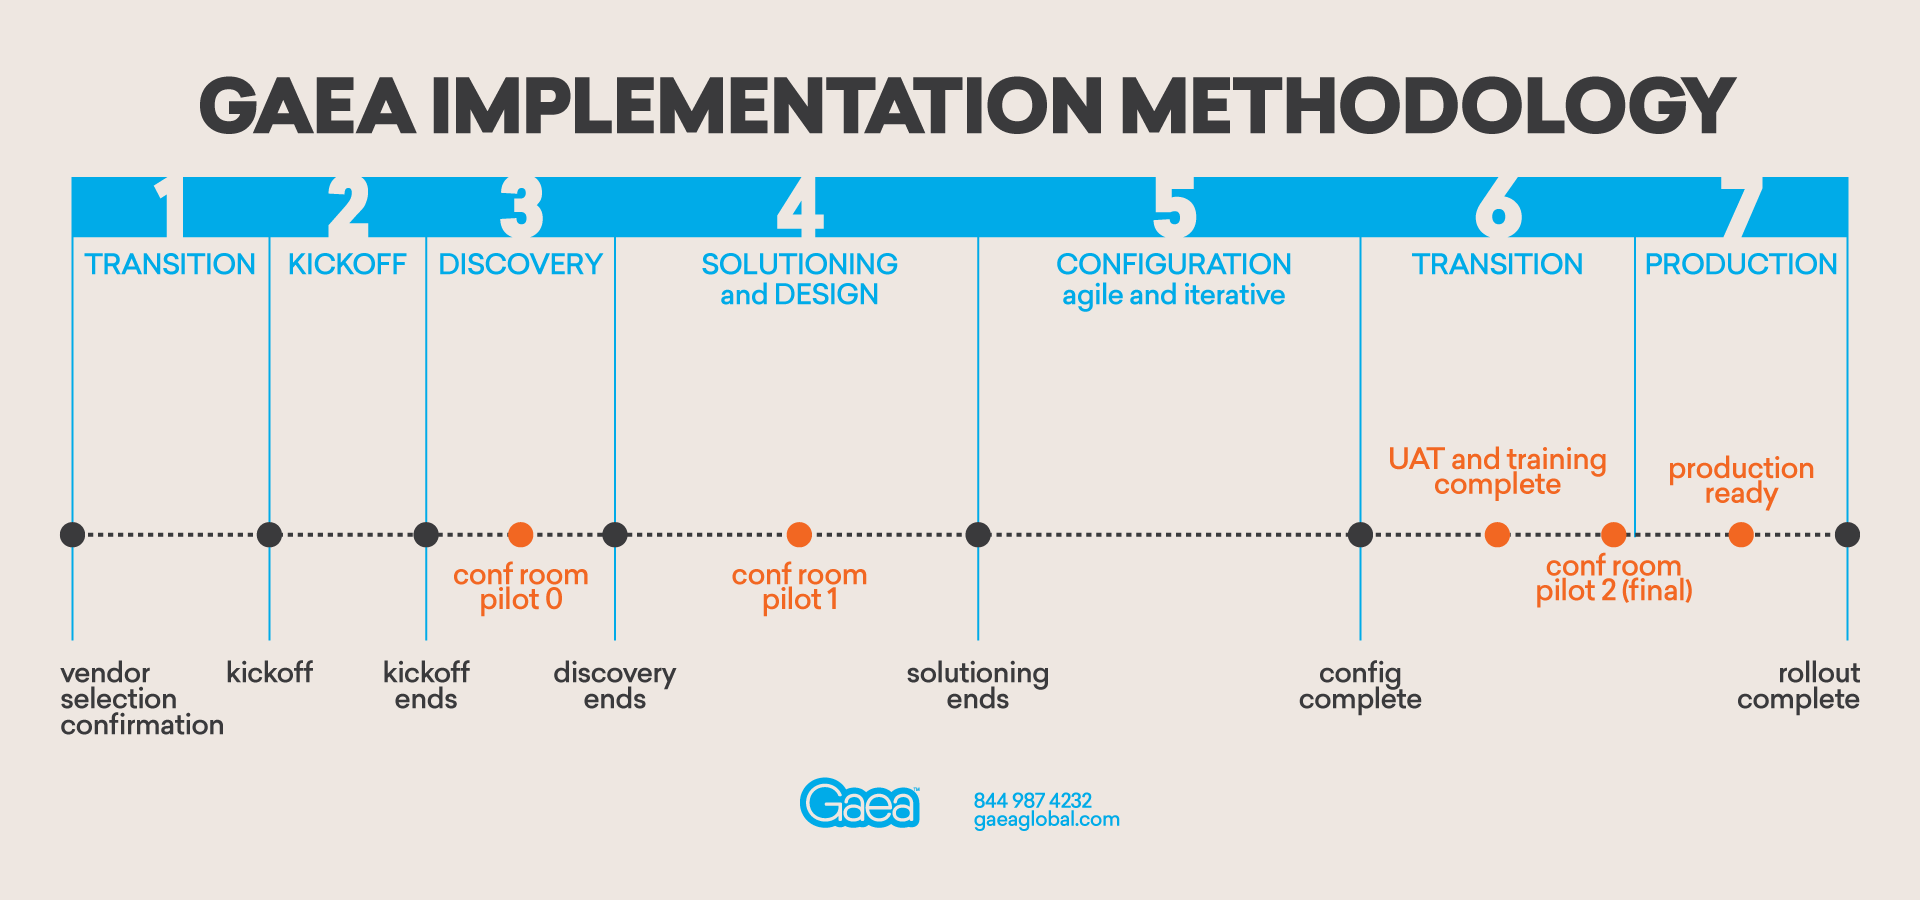 Gaea Implementation Methodology